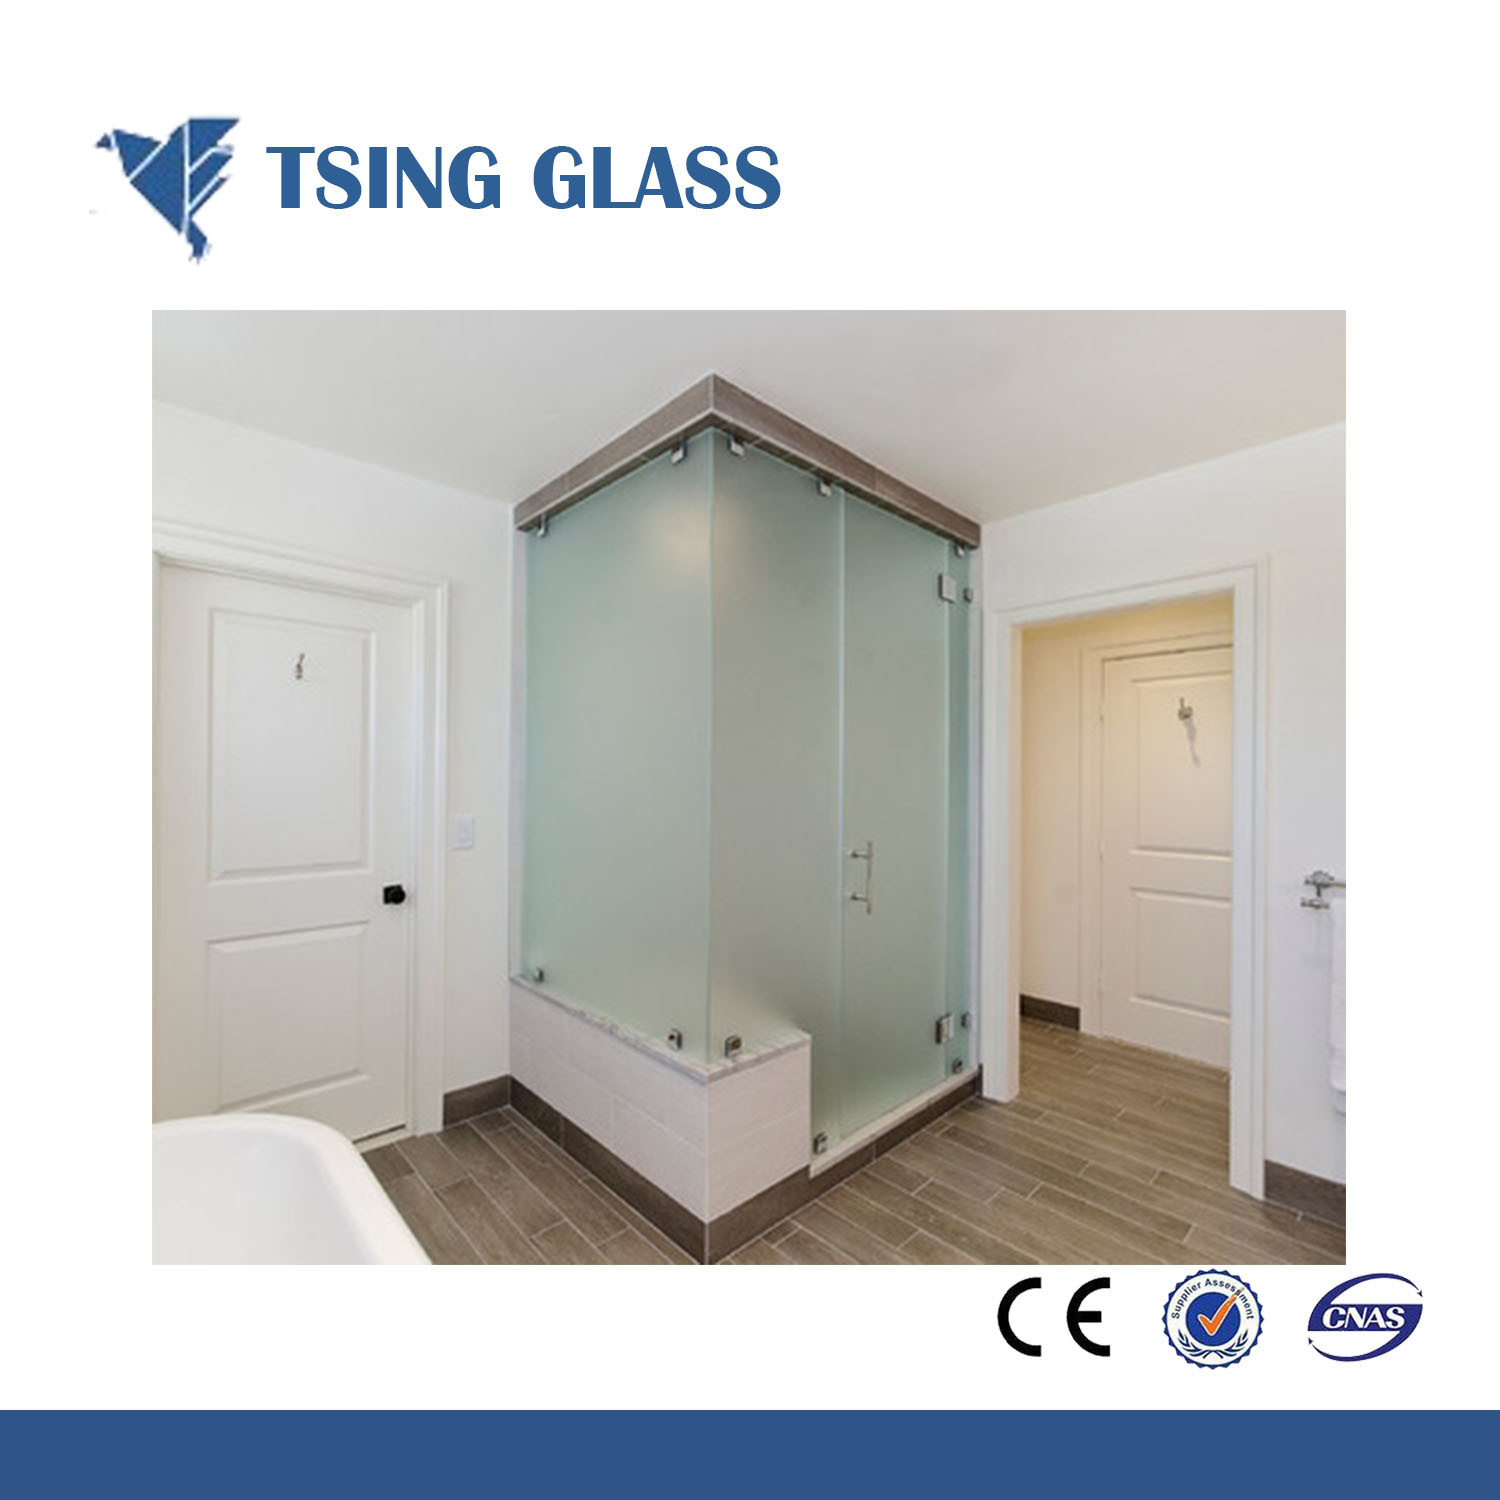 China Translucent Glass Frosted Glass Frosting Glass For